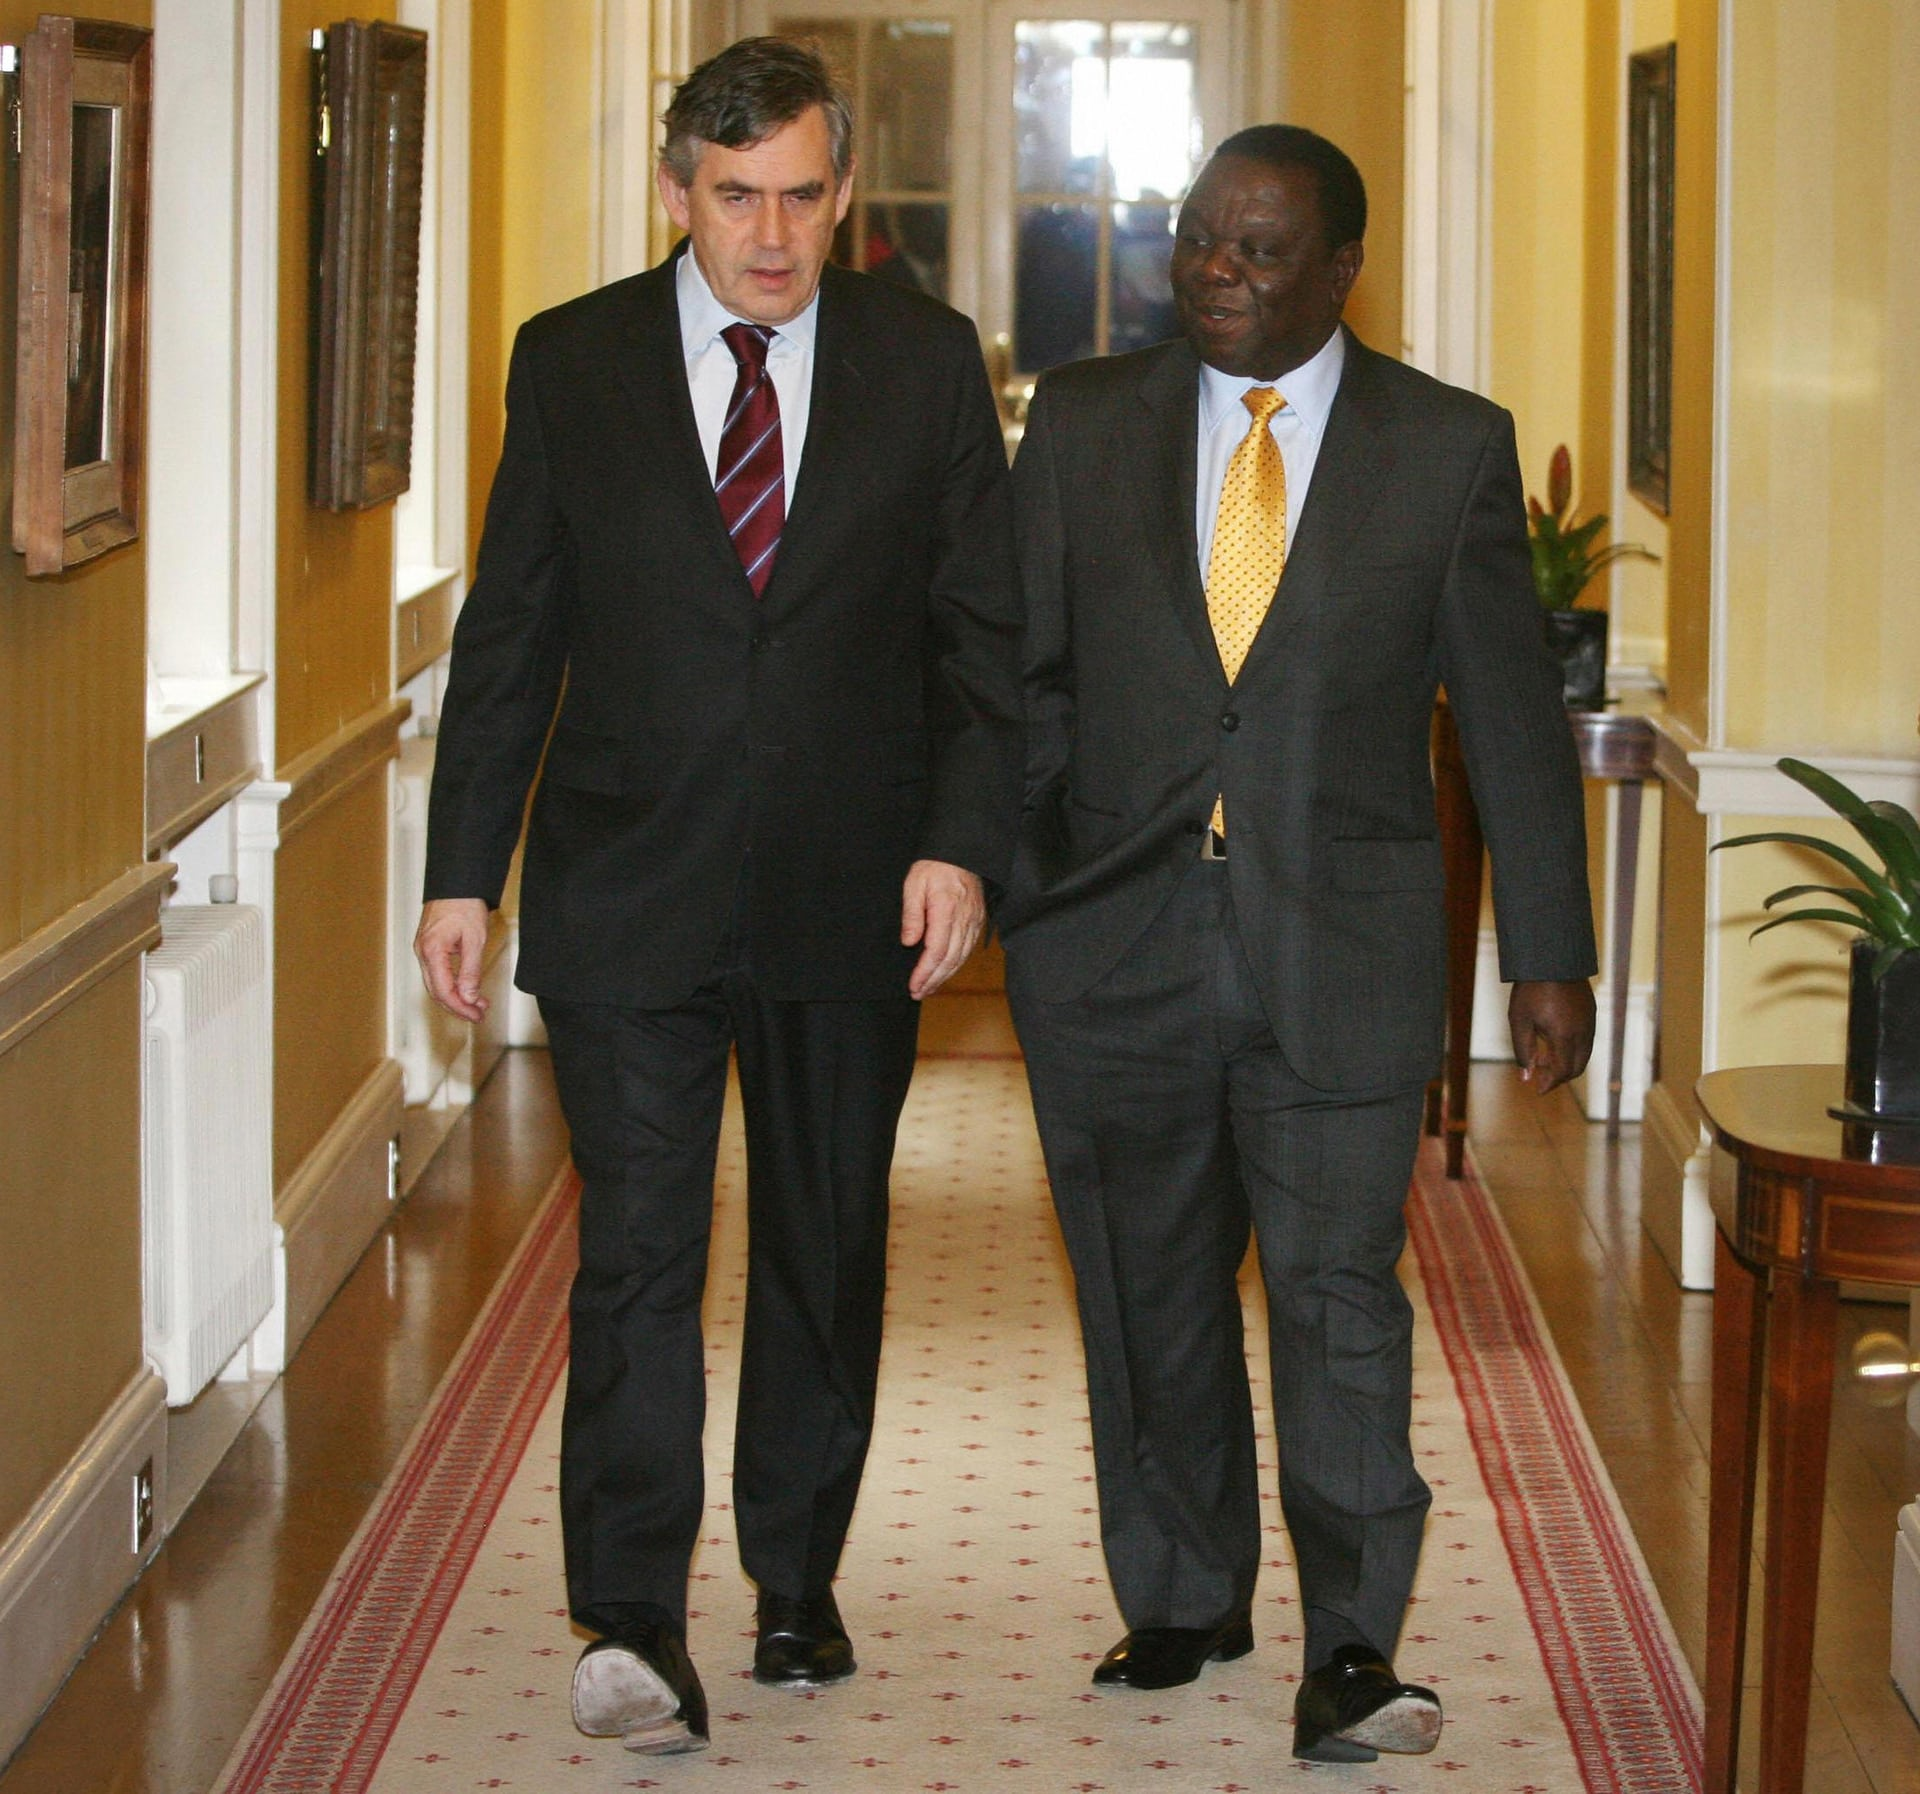 Tsvangirai meets then British prime minister Gordon Brown in Downing Street on a tour of Europe and the US in June 2009.